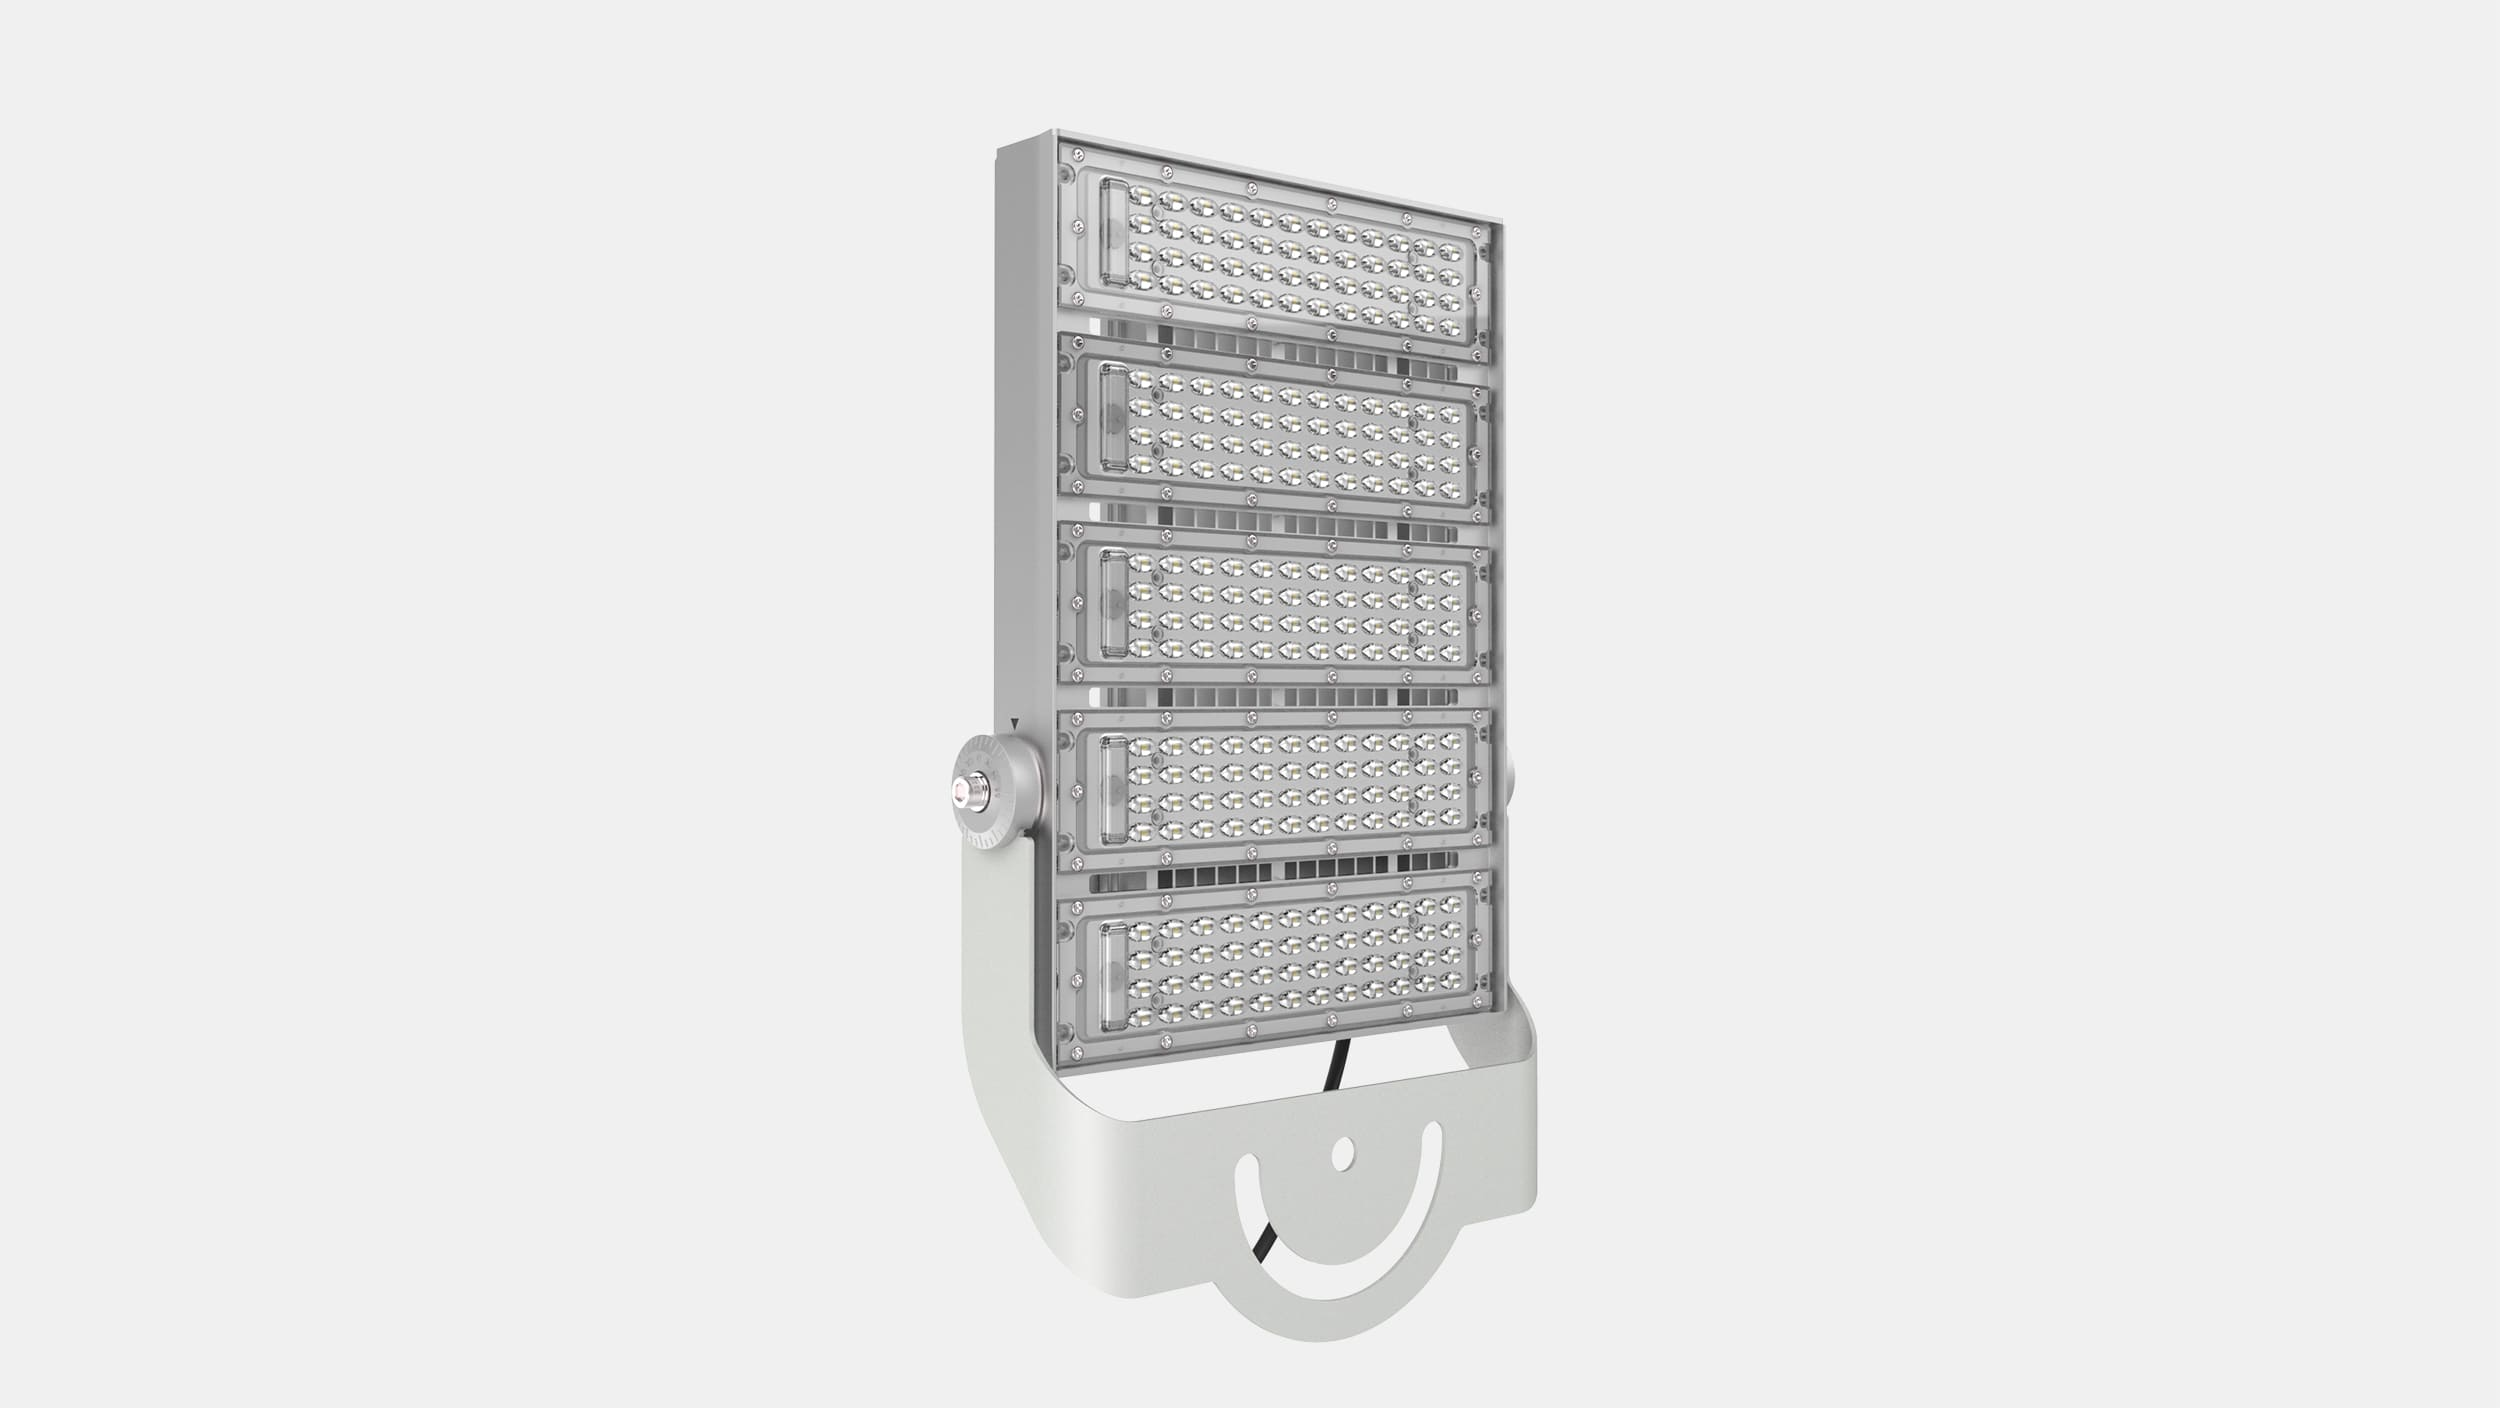 Pro-sport Flood light